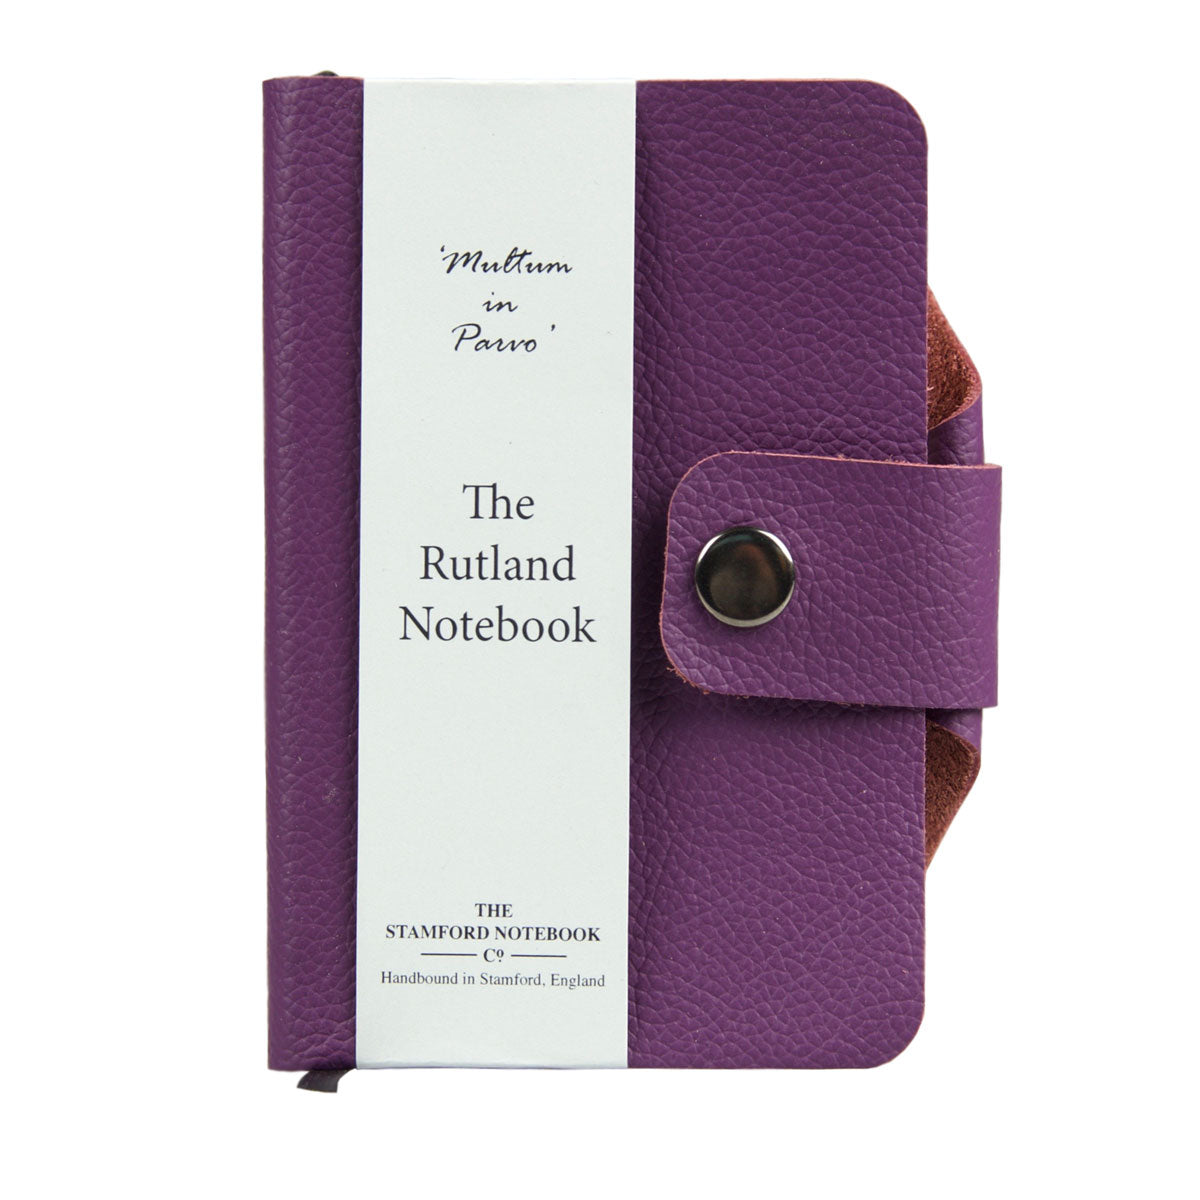 wineberry luxury leather handbound rutland notebook